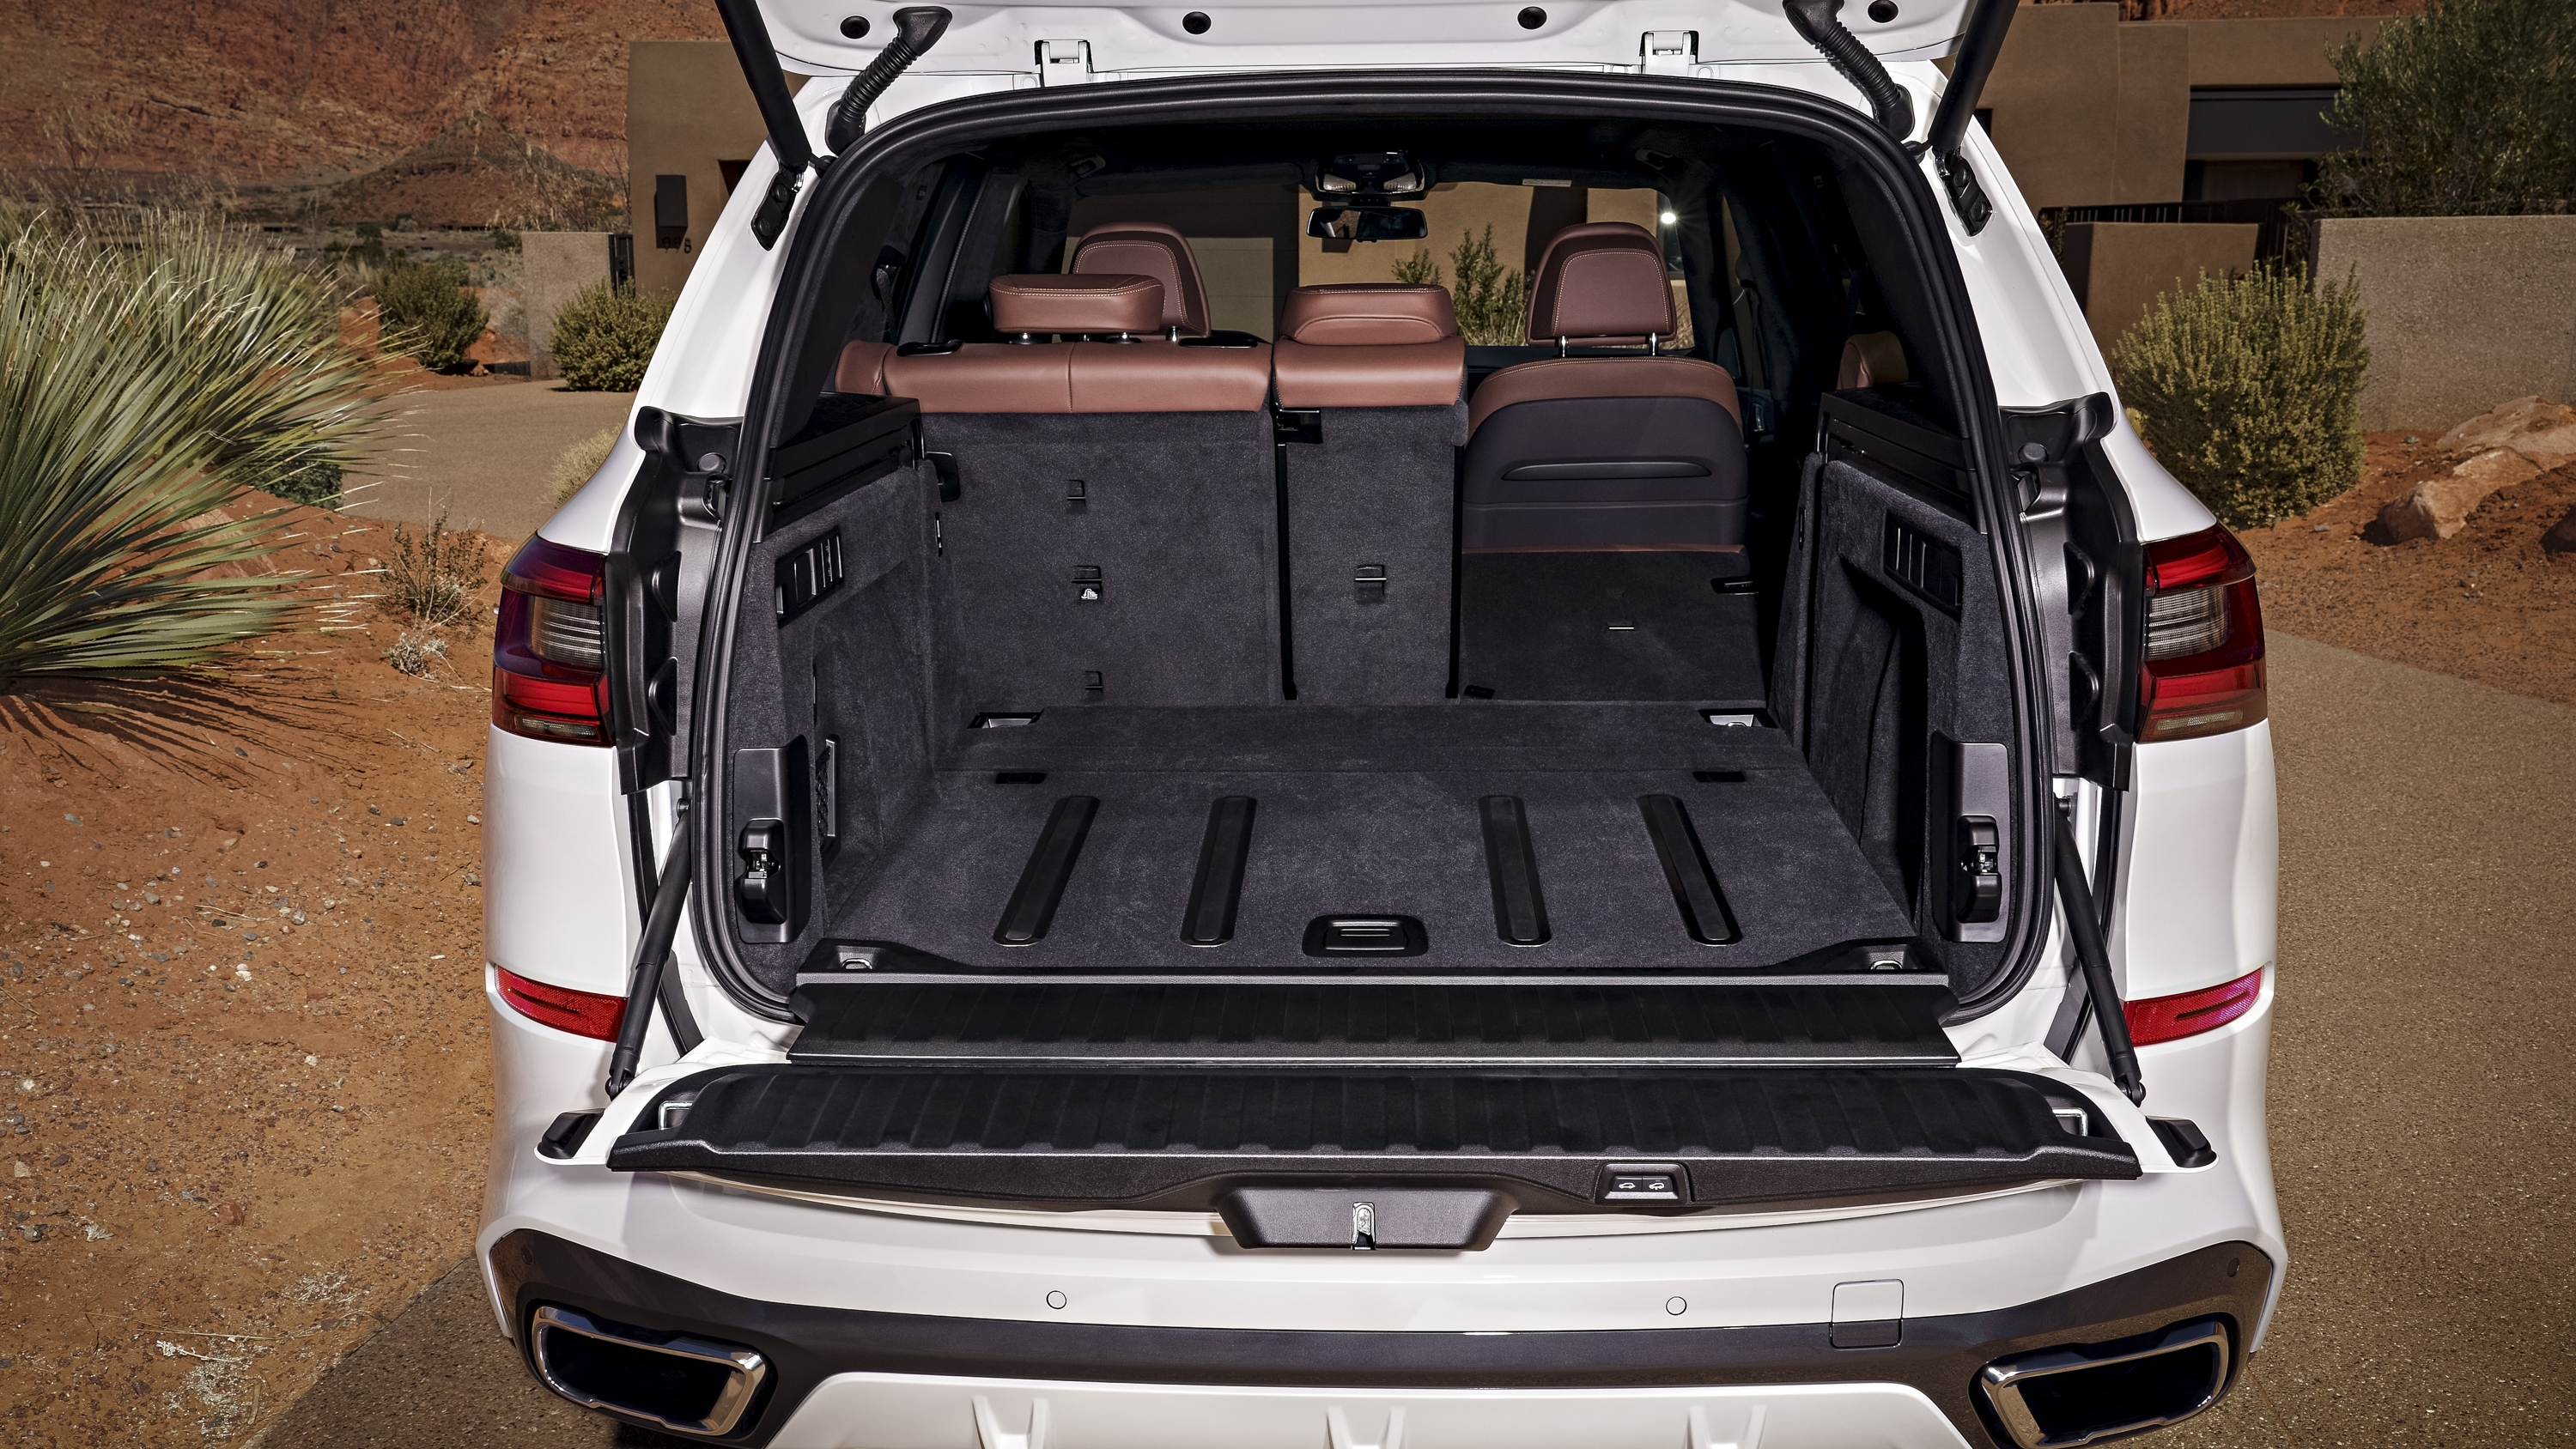 The 2019 Bmw X5 S Electric Boot Cover Is The Definition Of